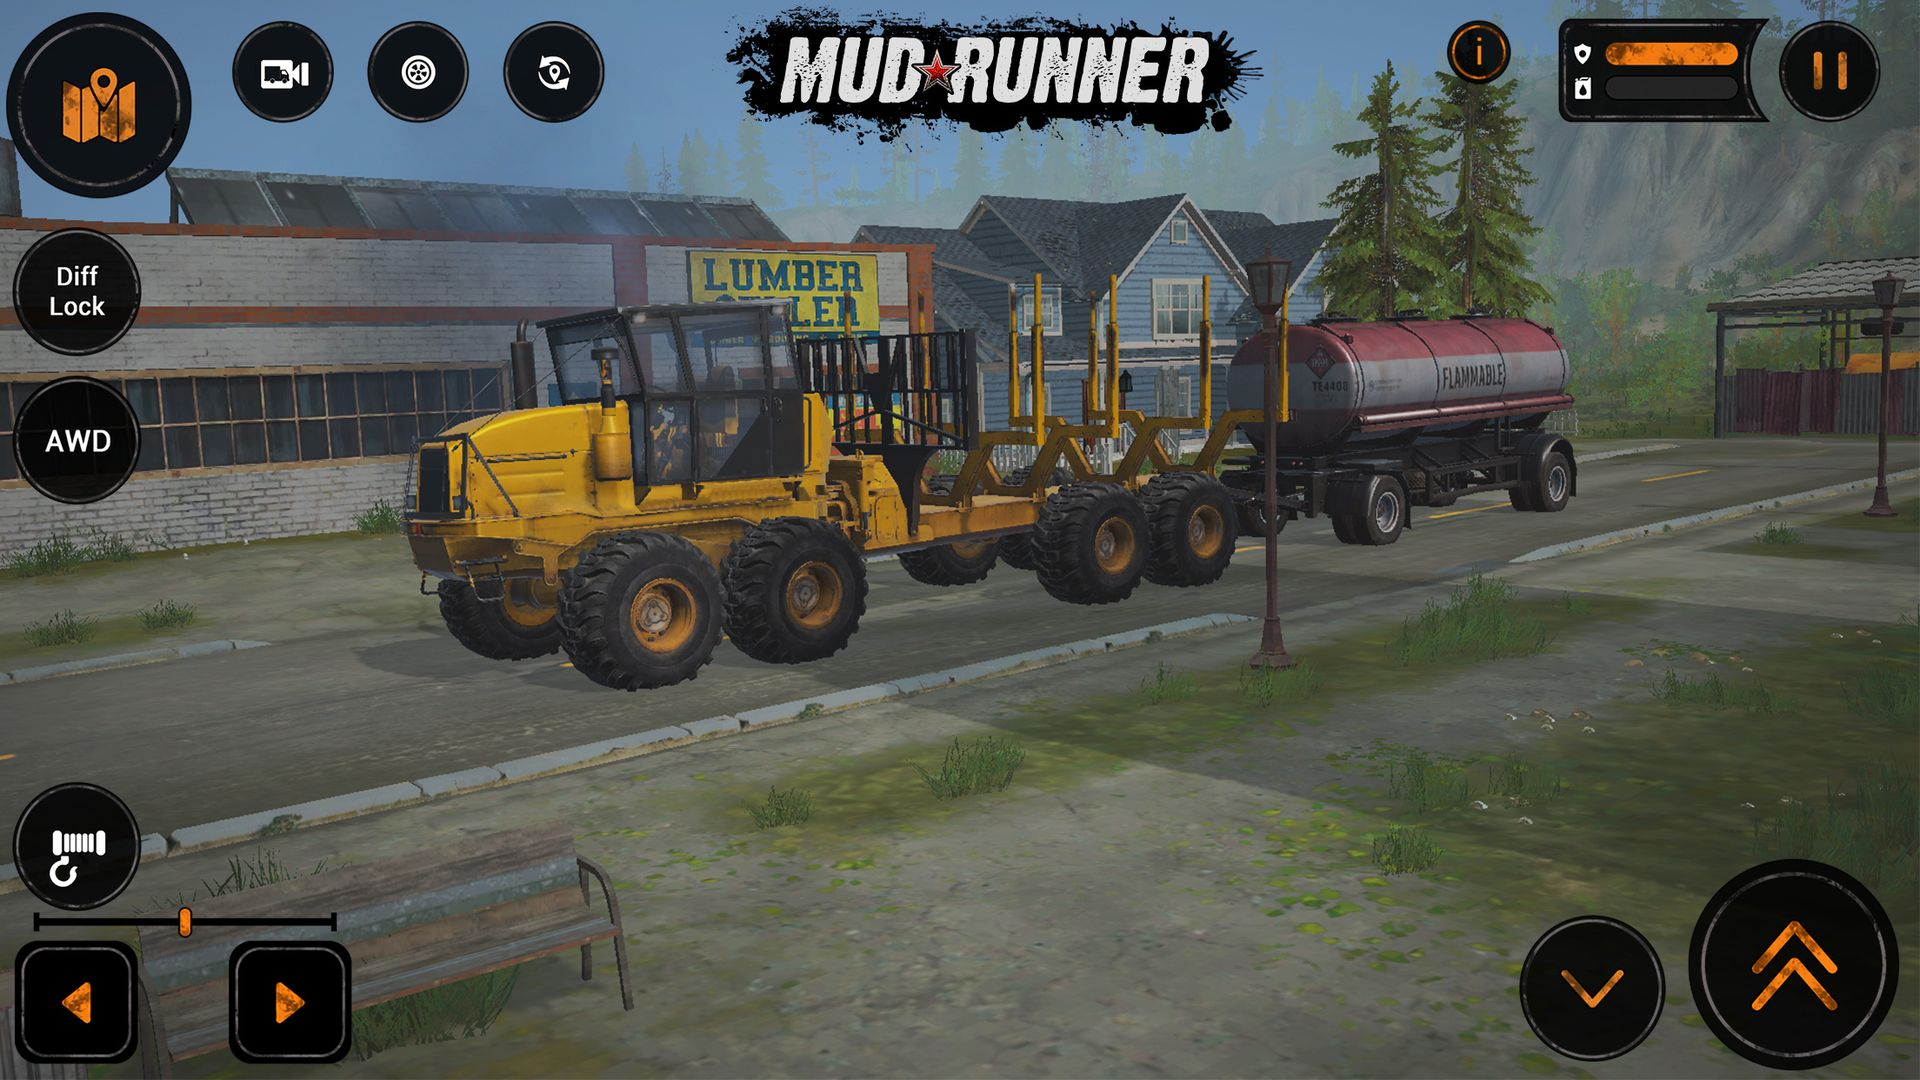 MudRunner Mobile unleashes American Wilds DLC with its two new American maps, missions and vehicles